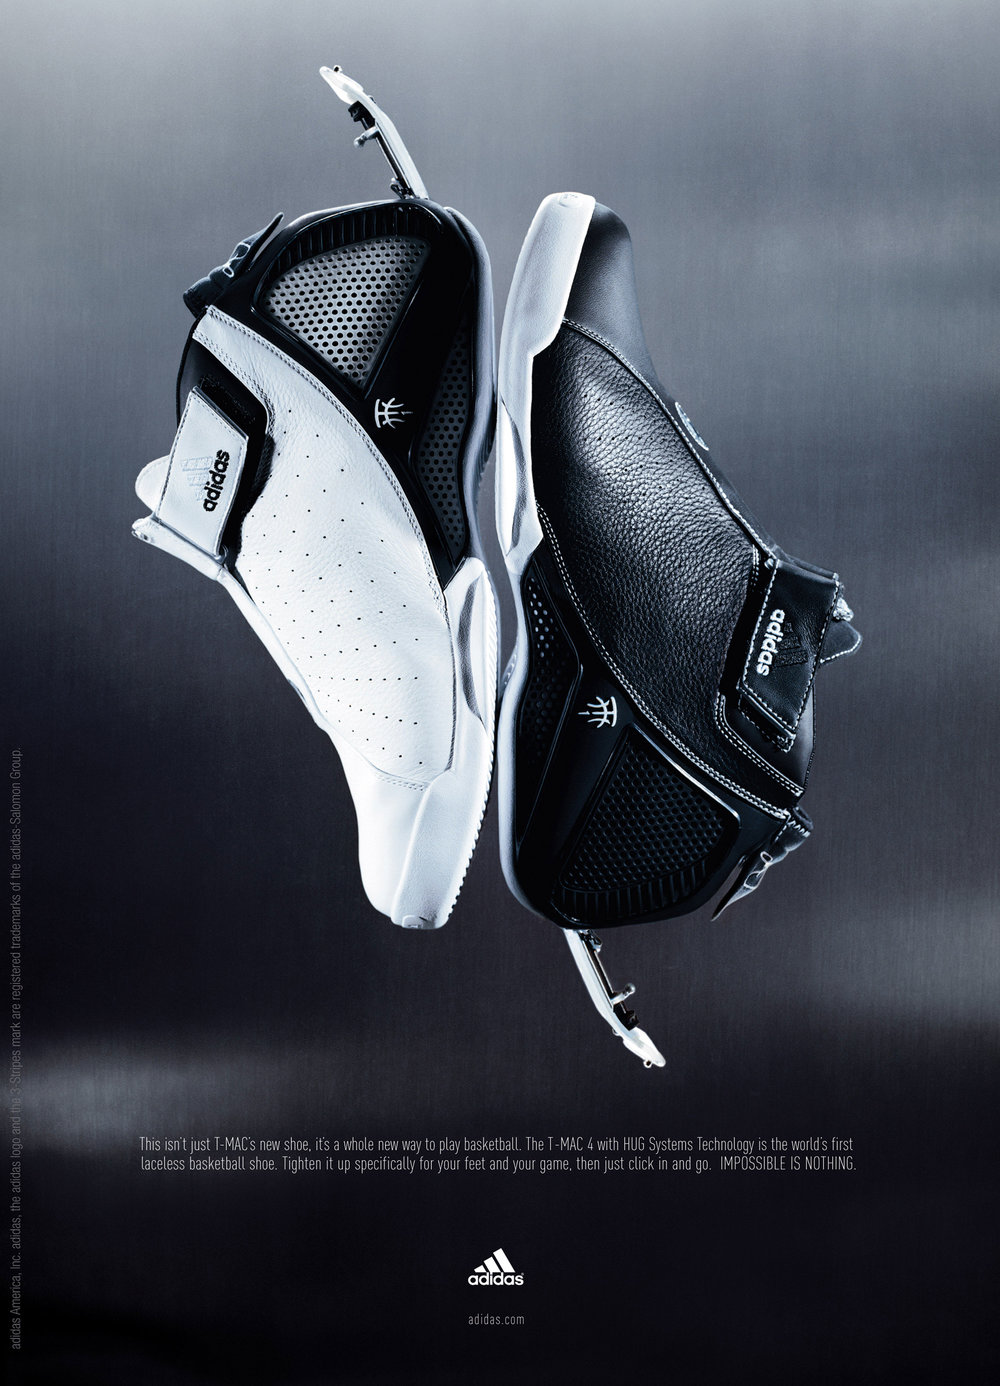 Adidas Greaves Co Creative Services